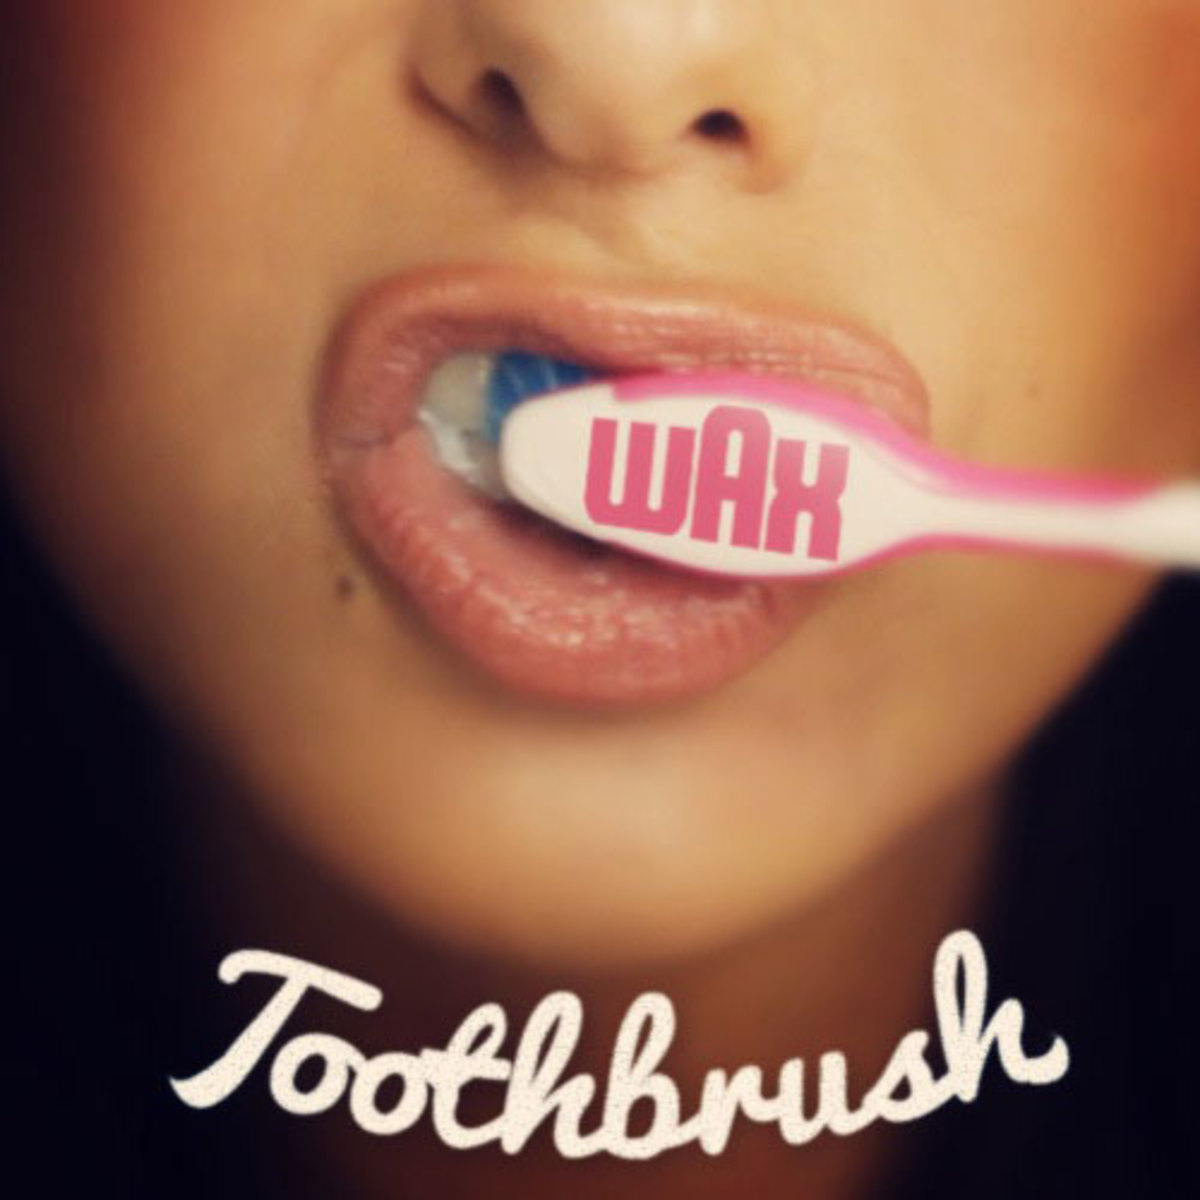 wax-toothbrush.jpg